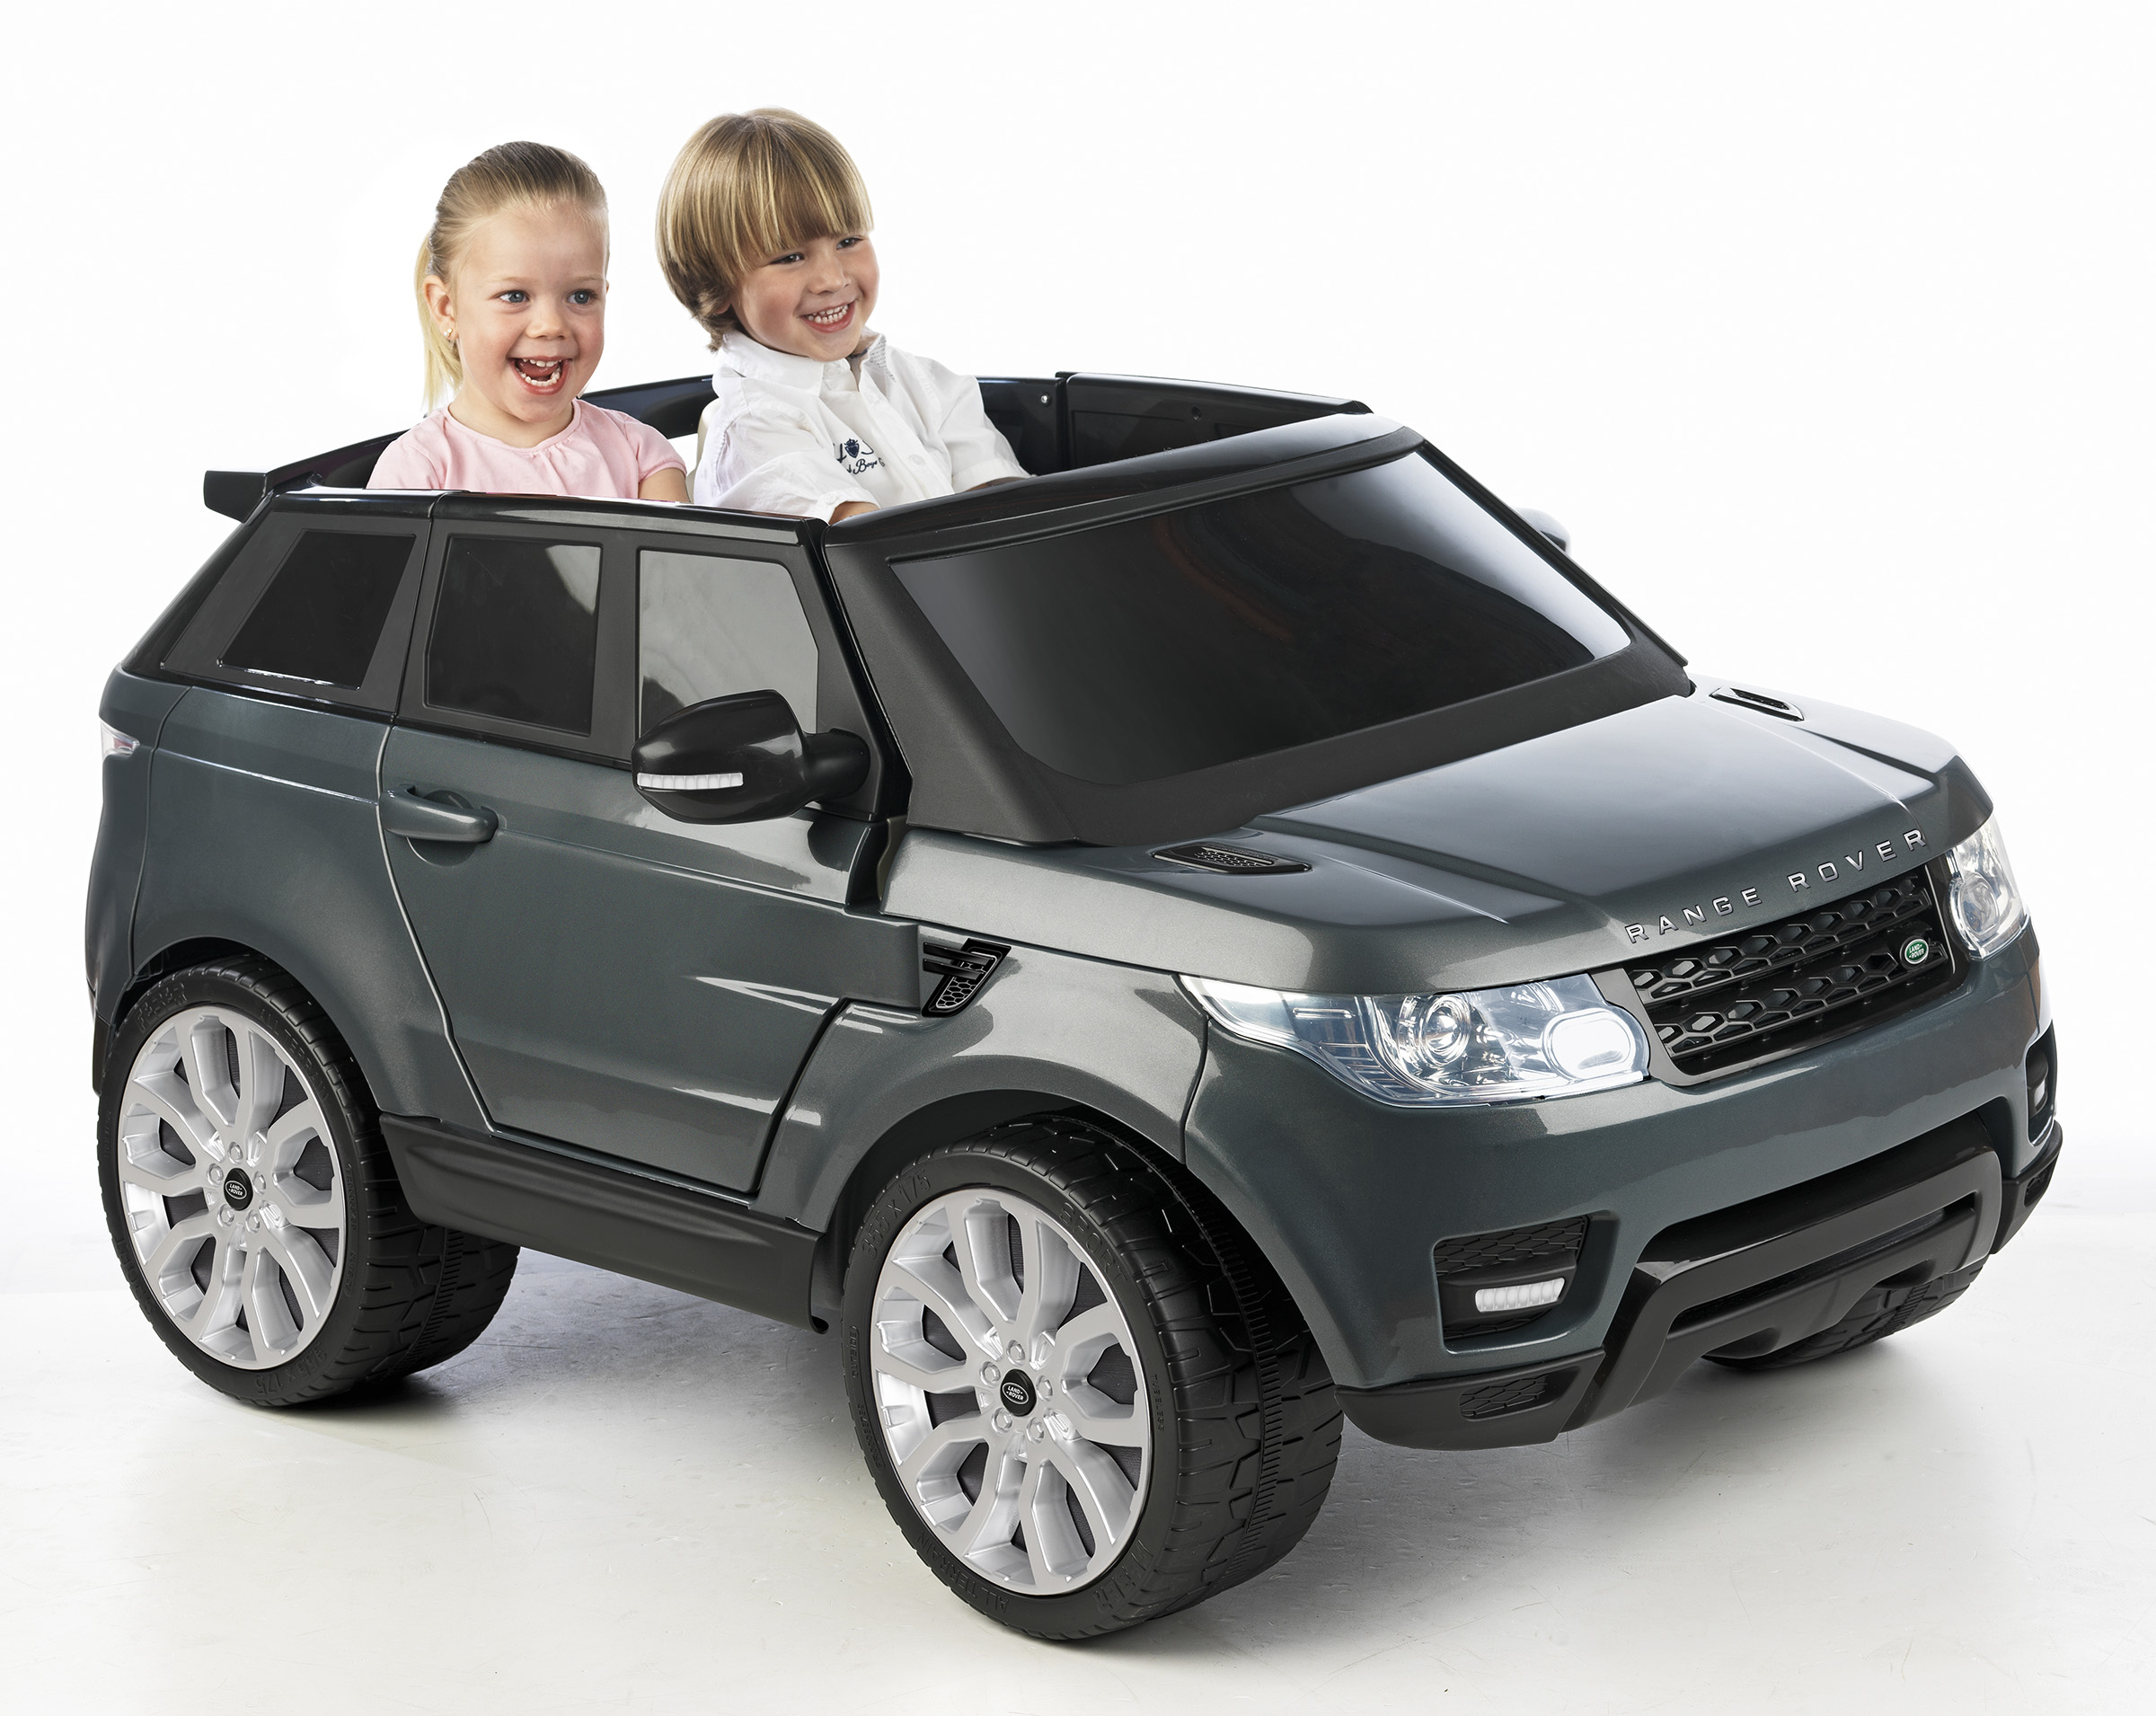 c124975b4 ride-on roundup: famosa range rover, dynacraft hello kitty coupe ...